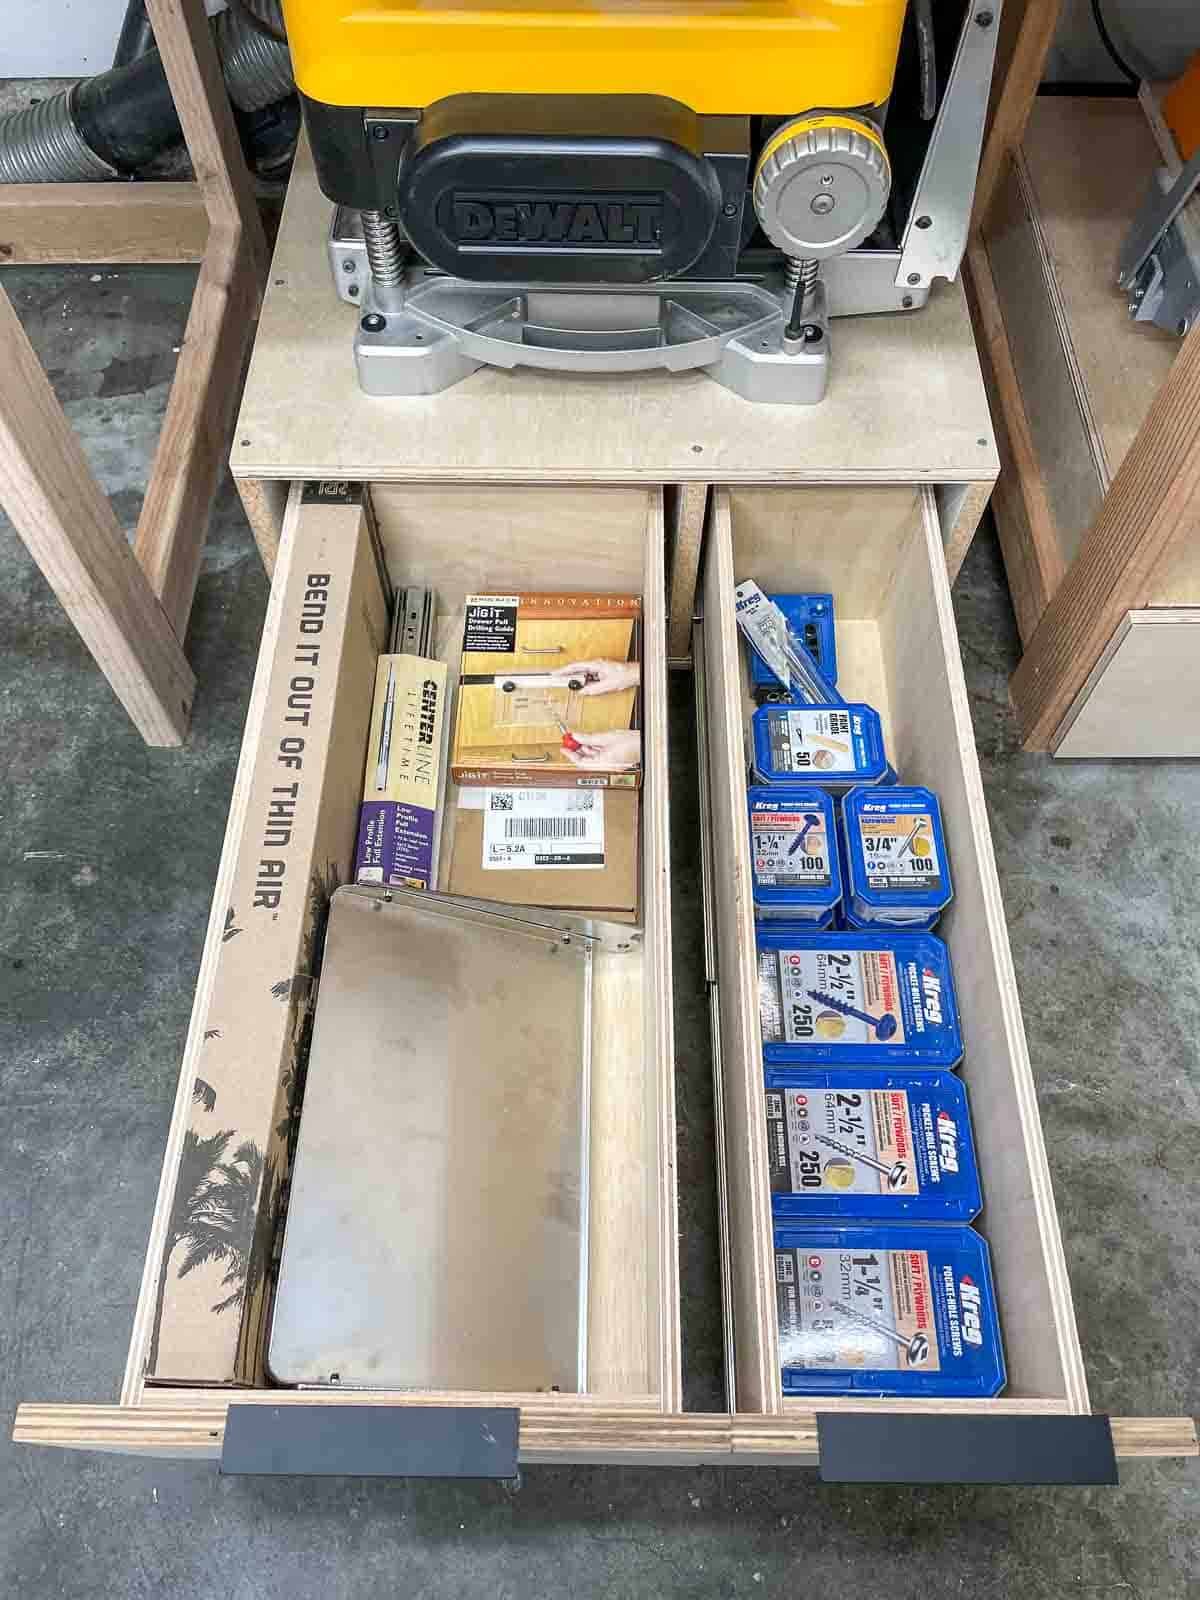 planer stand with drawers pulled out to display screws and other accessories